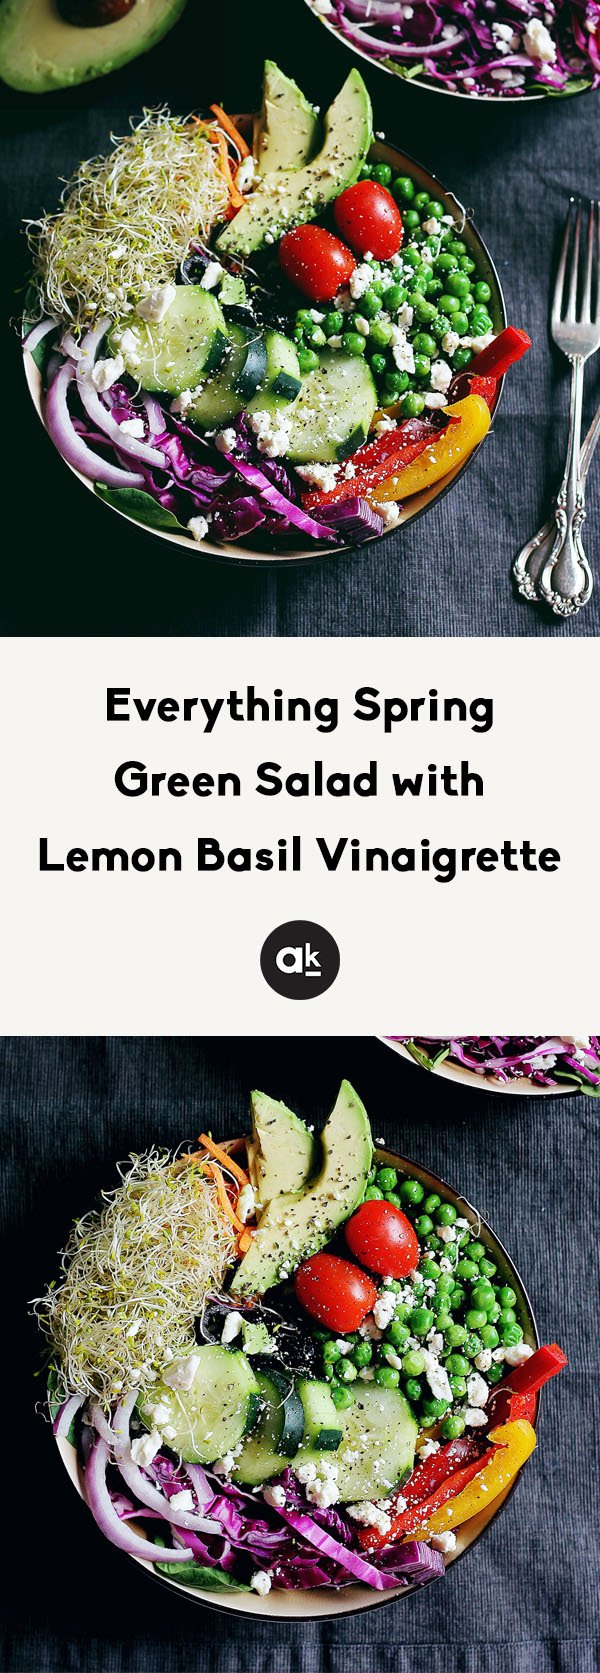 Beautiful & healthy spring green salad with fresh seasonal produce, seeds, avocado & the BEST basil lemon vinaigrette. Enjoy as a main meal, spring side salad, or it bring to a party!